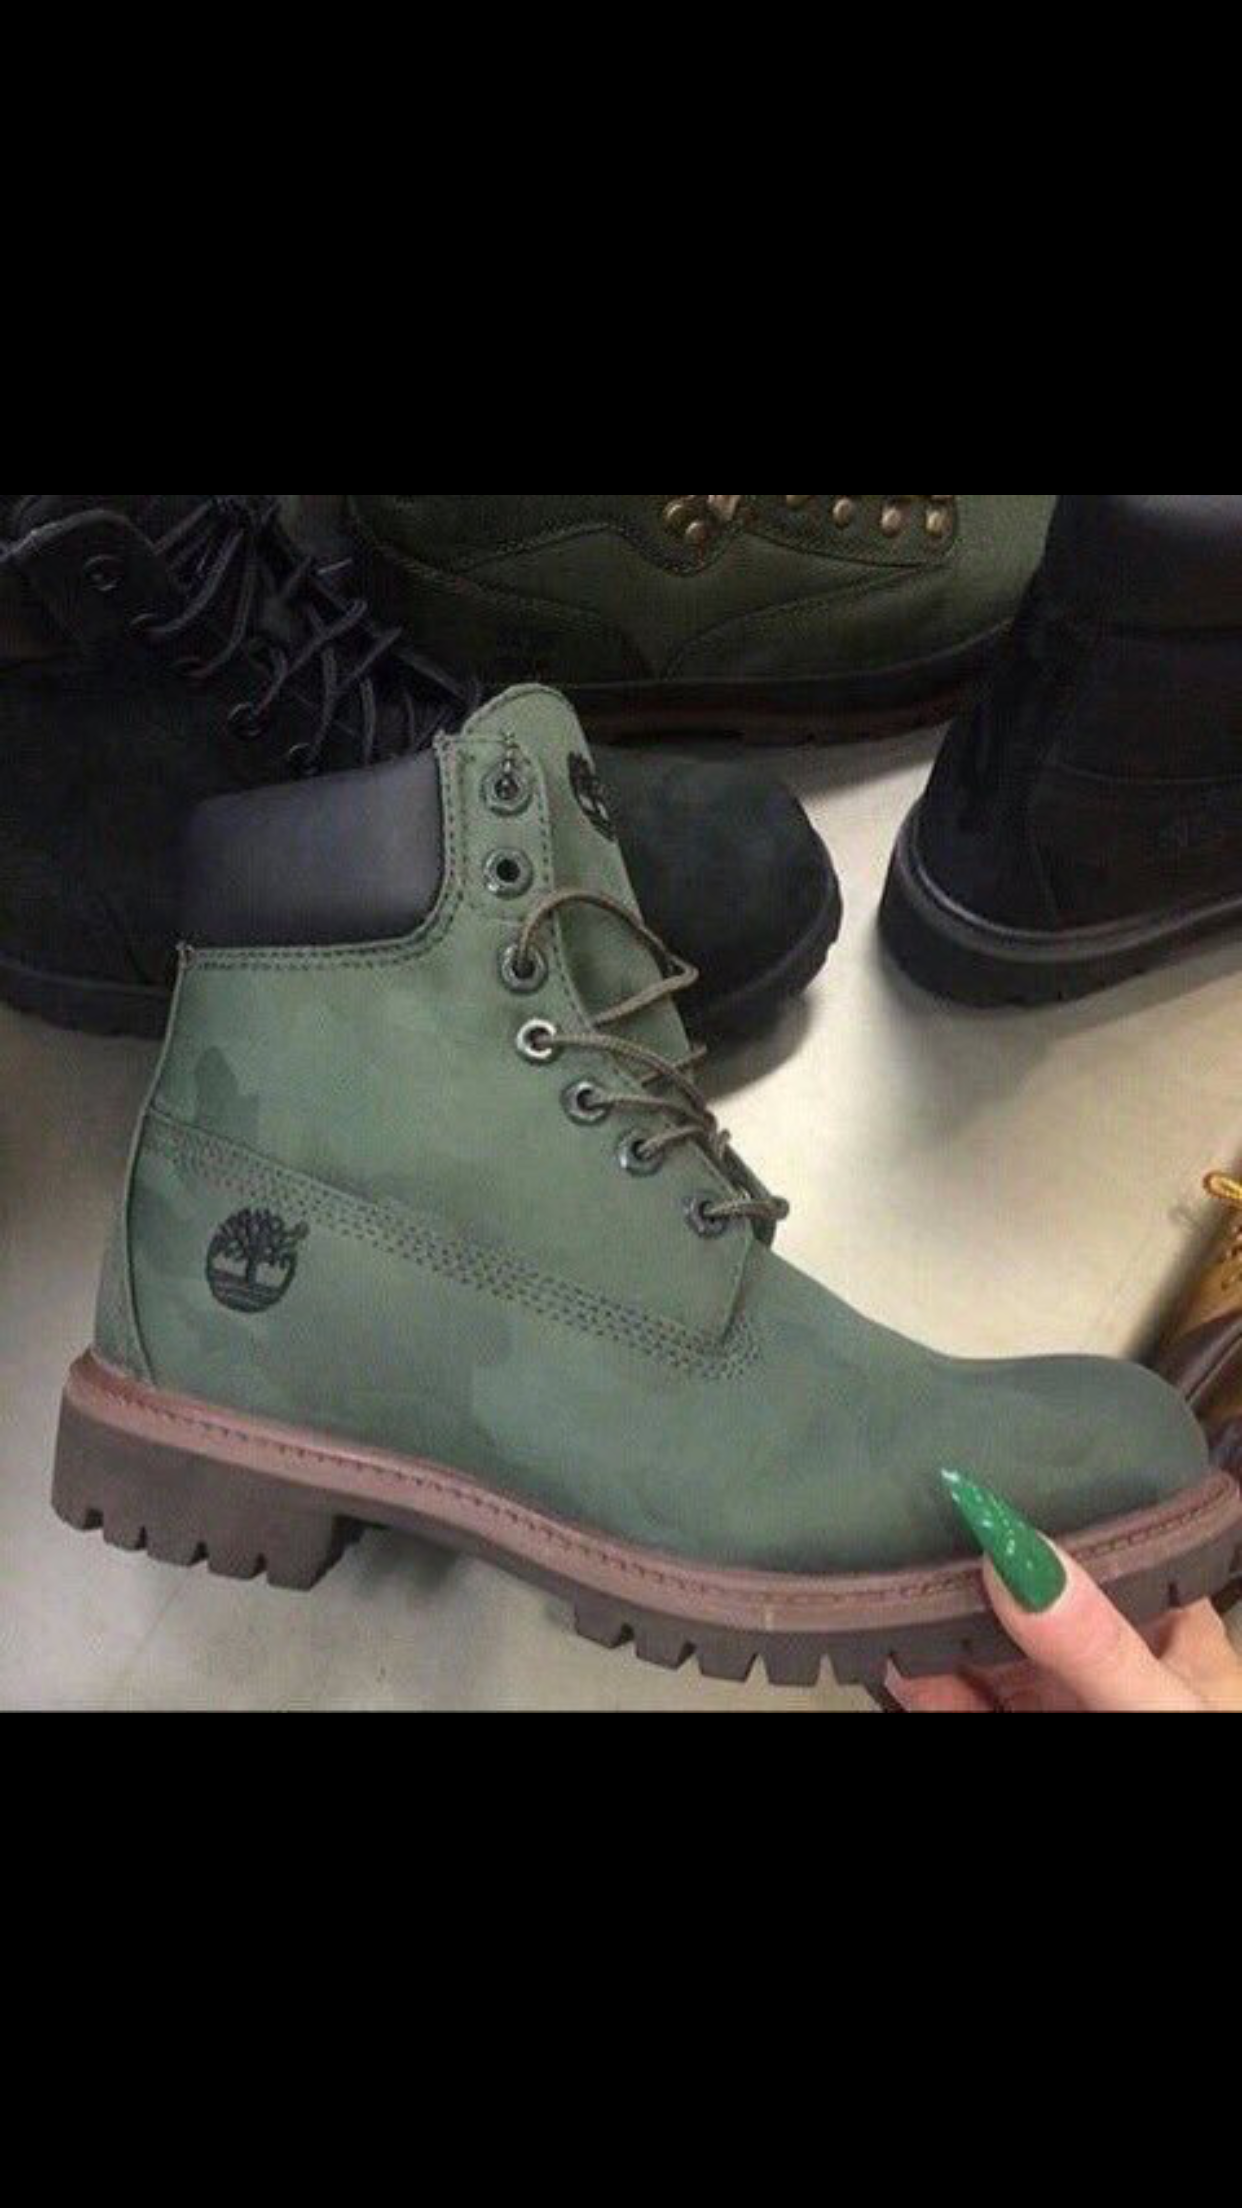 Green timberland boots image by Emma Louise on Footwear